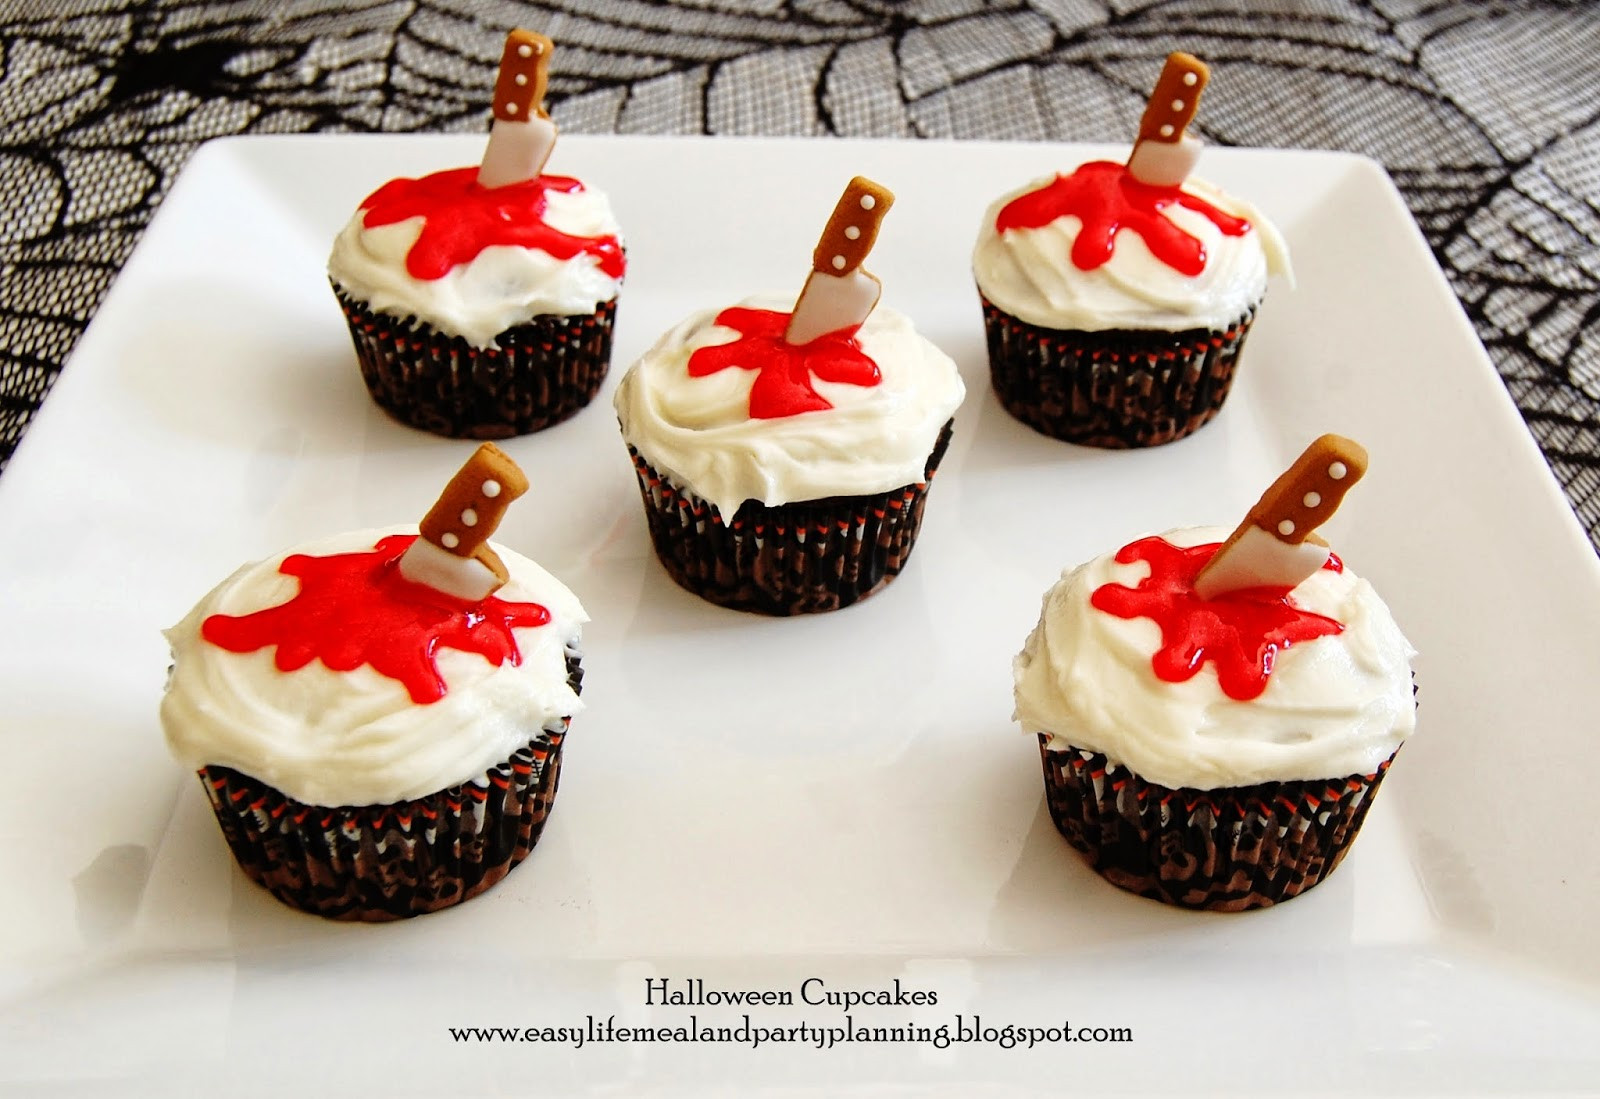 Halloween Cupcakes Recipes  Easy Life Meal and Party Planning October 2013